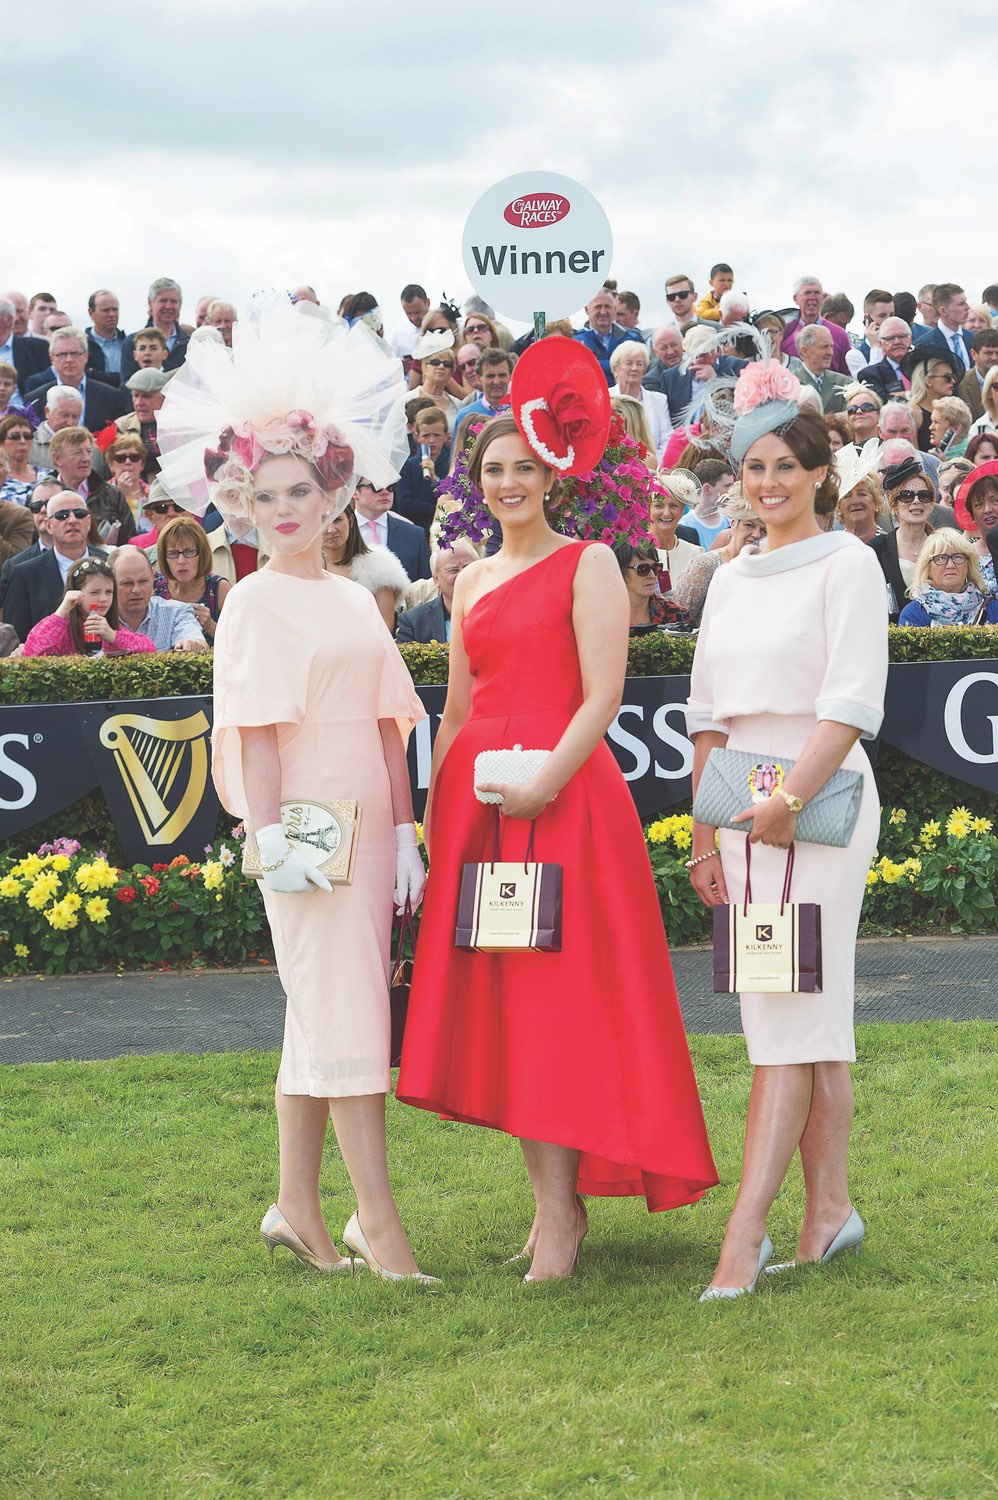 Alex Butler (middle) from, Co. Cork scooped the coveted title of Best Dressed Lady at the 2015 Galway Races Ladies Day, accompanied by Danielle Gingell (left) and Mary White (right).